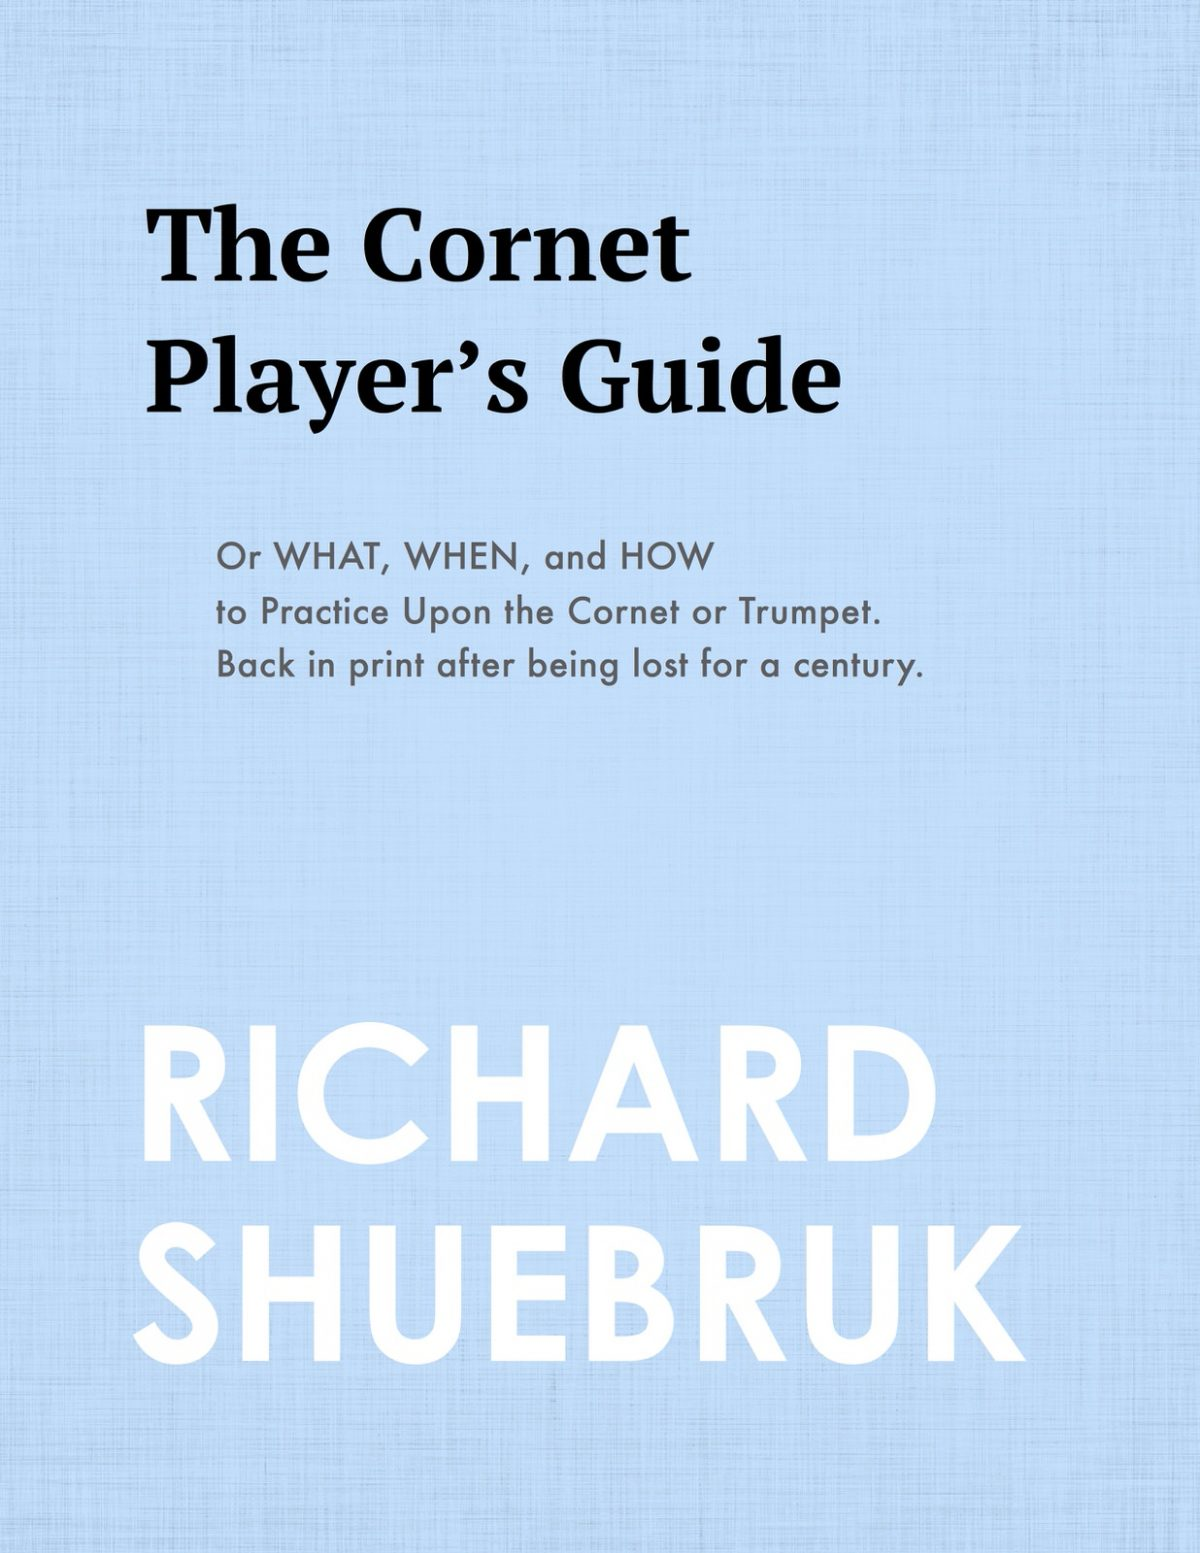 Shuebruk, The Cornet Player's Guide or When, What, and How to Practice-p01